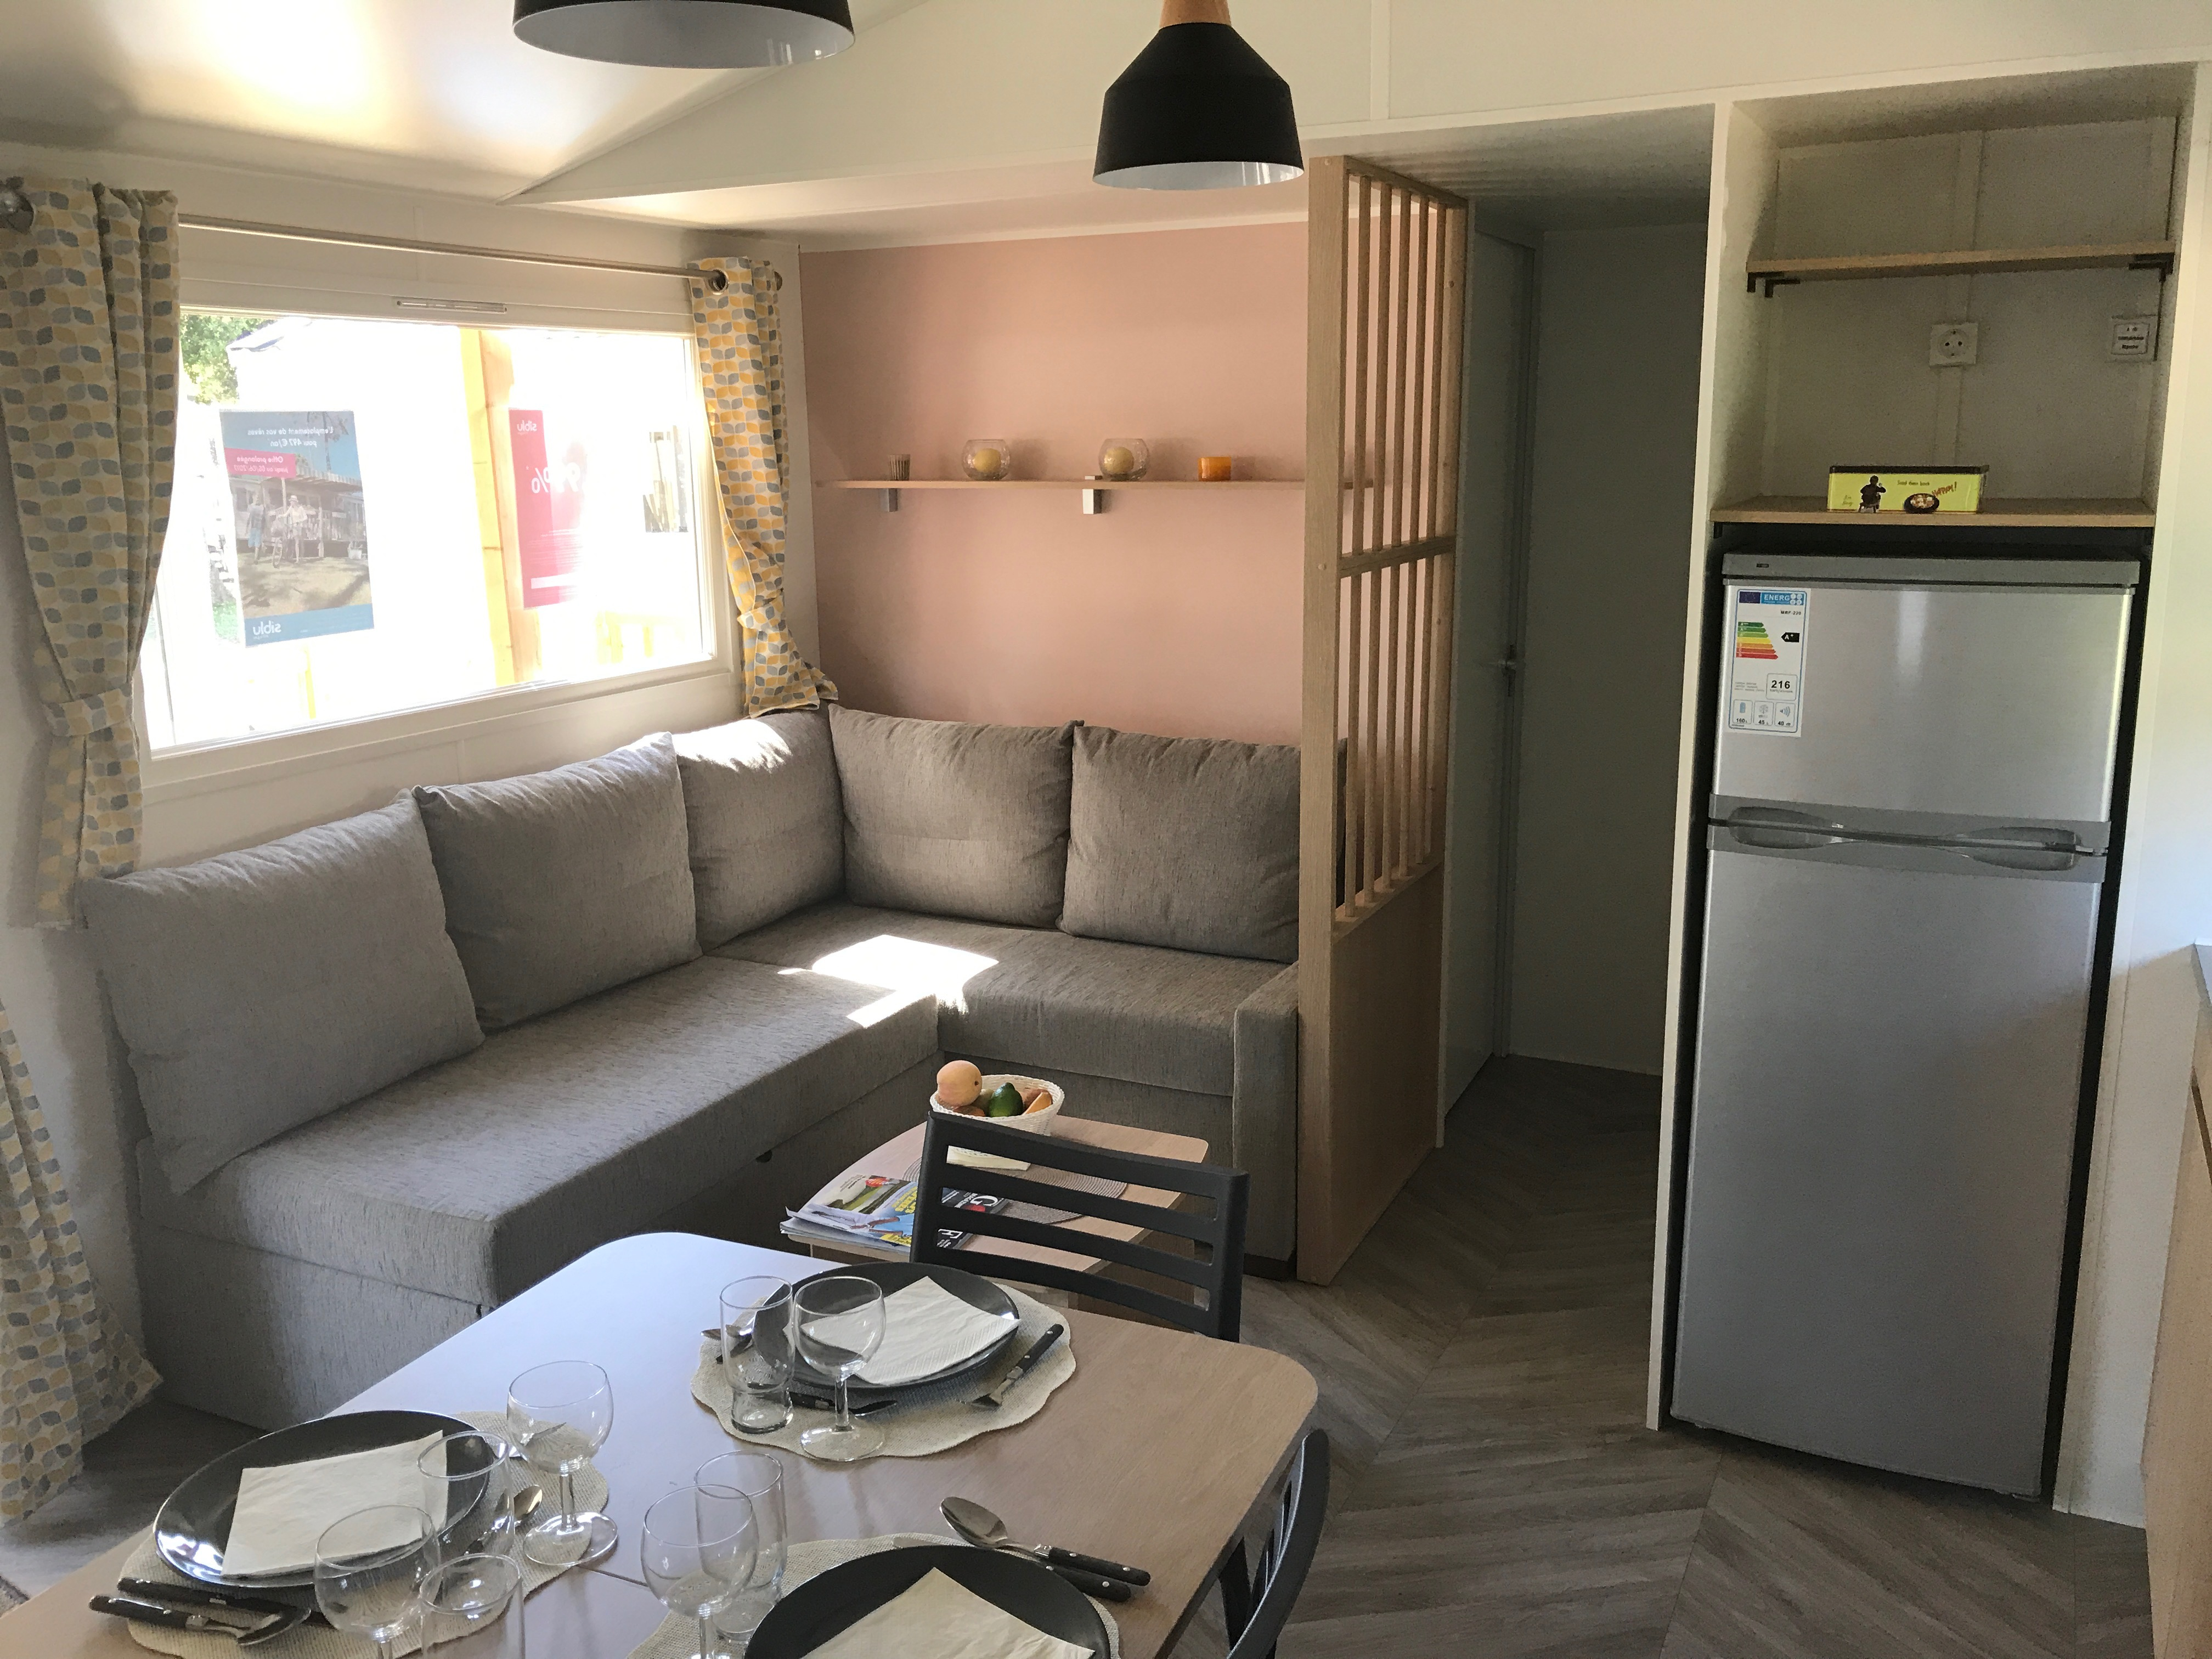 Mobil-home 6 personnes  - location vacances  n°60678